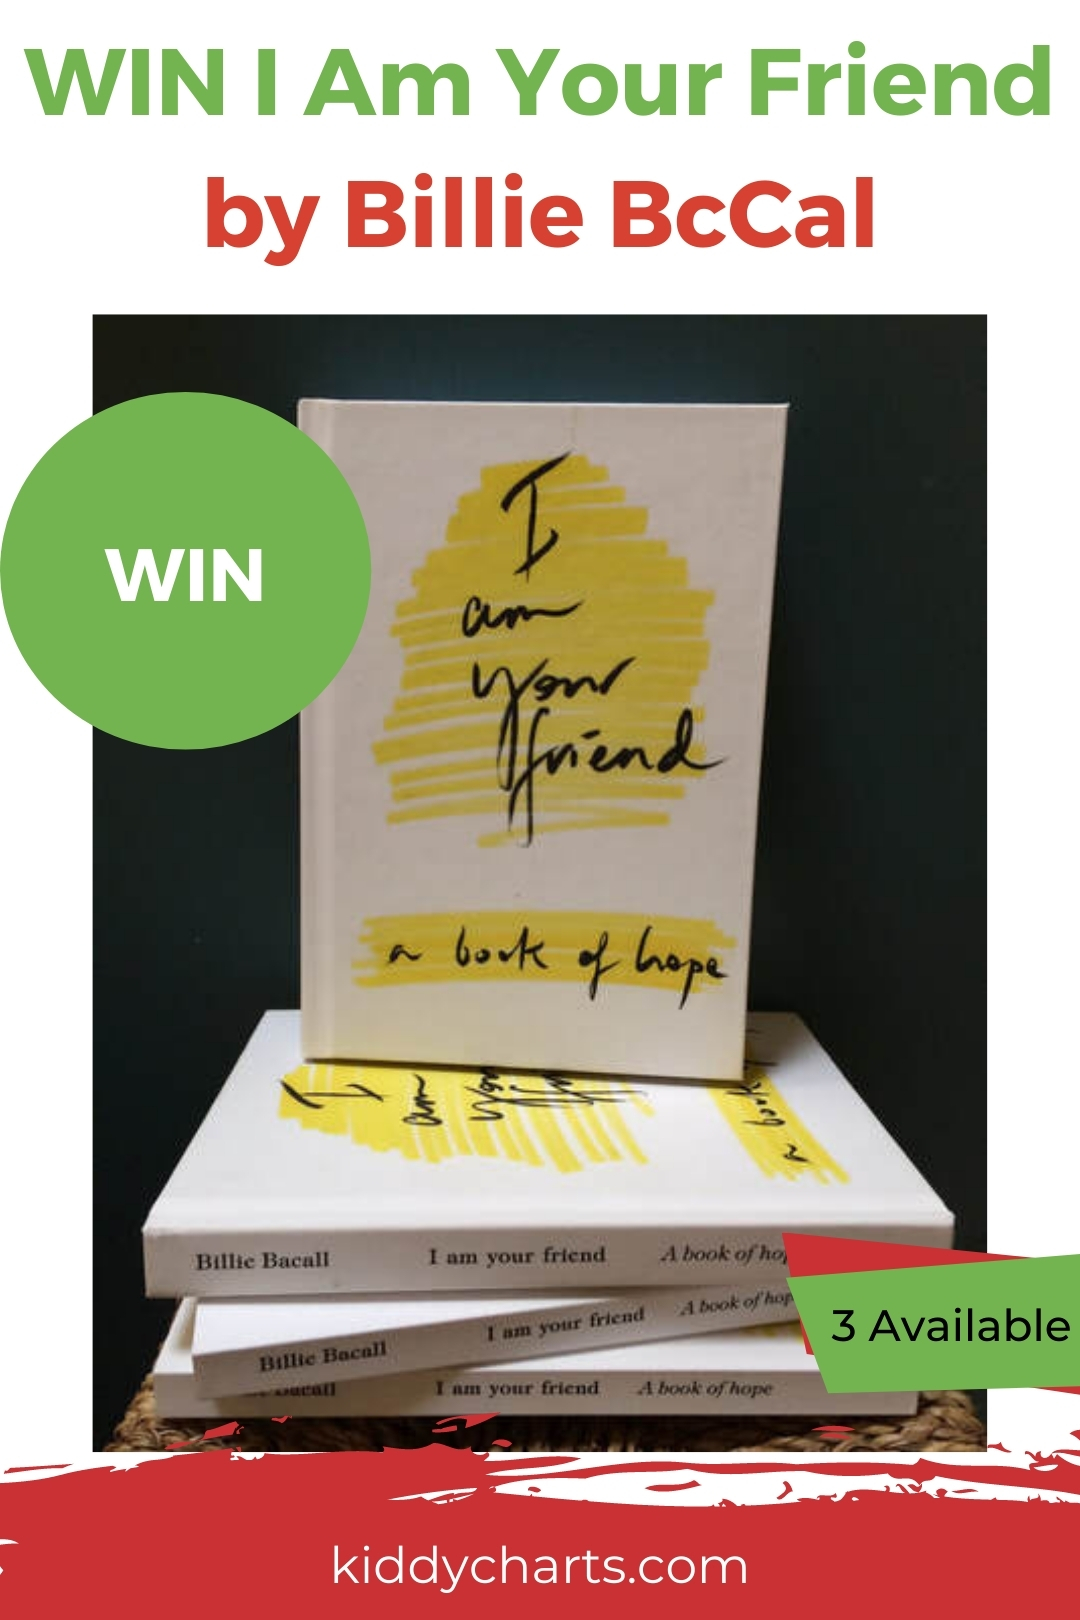 Win I am your Friend pocket books